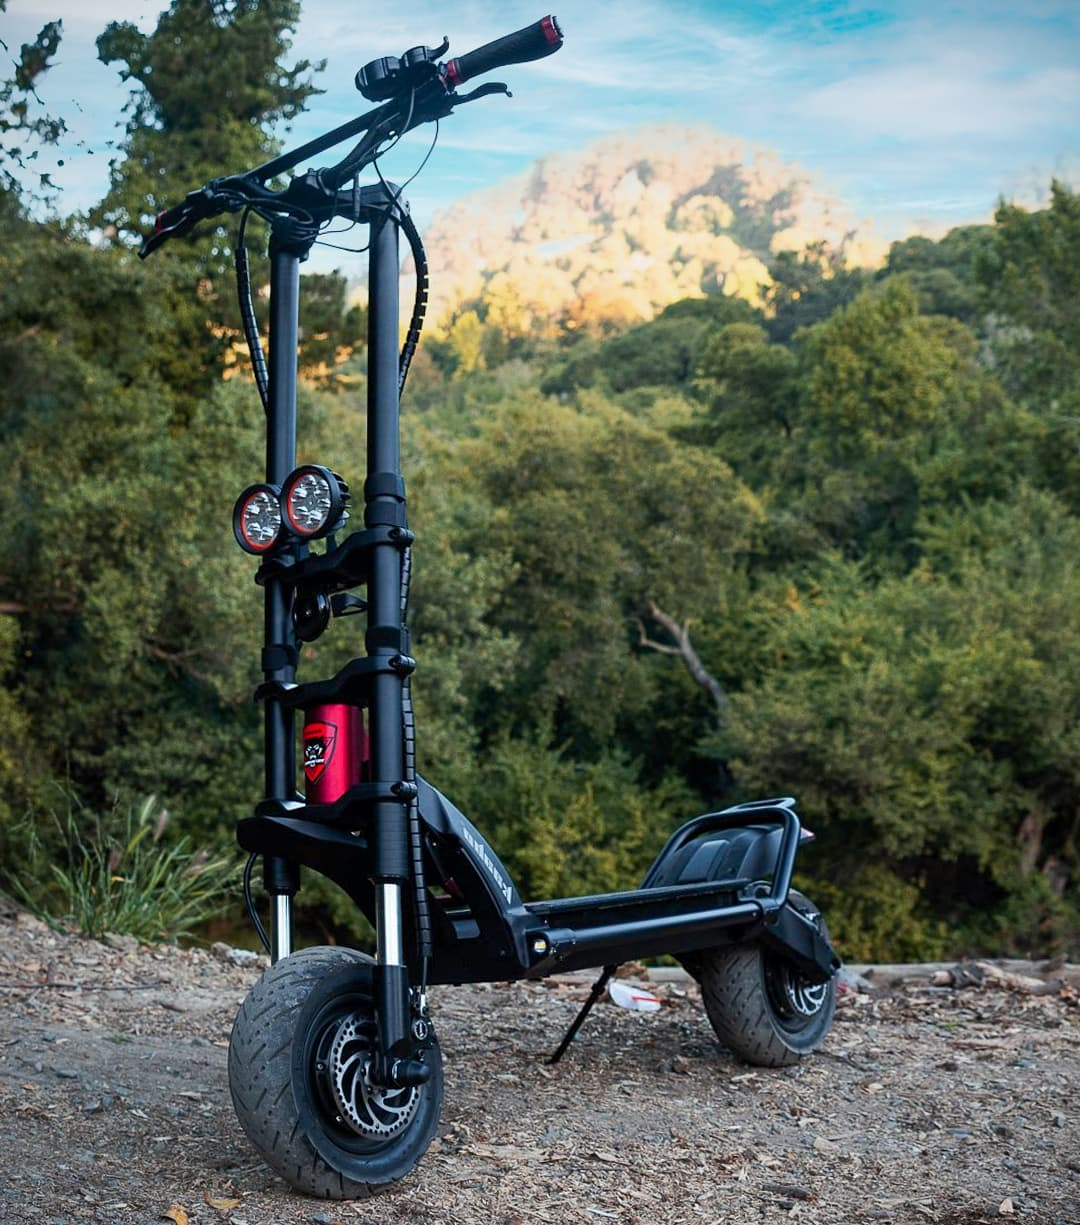 Kaabo wolf warrior 11 electric scooter in nature